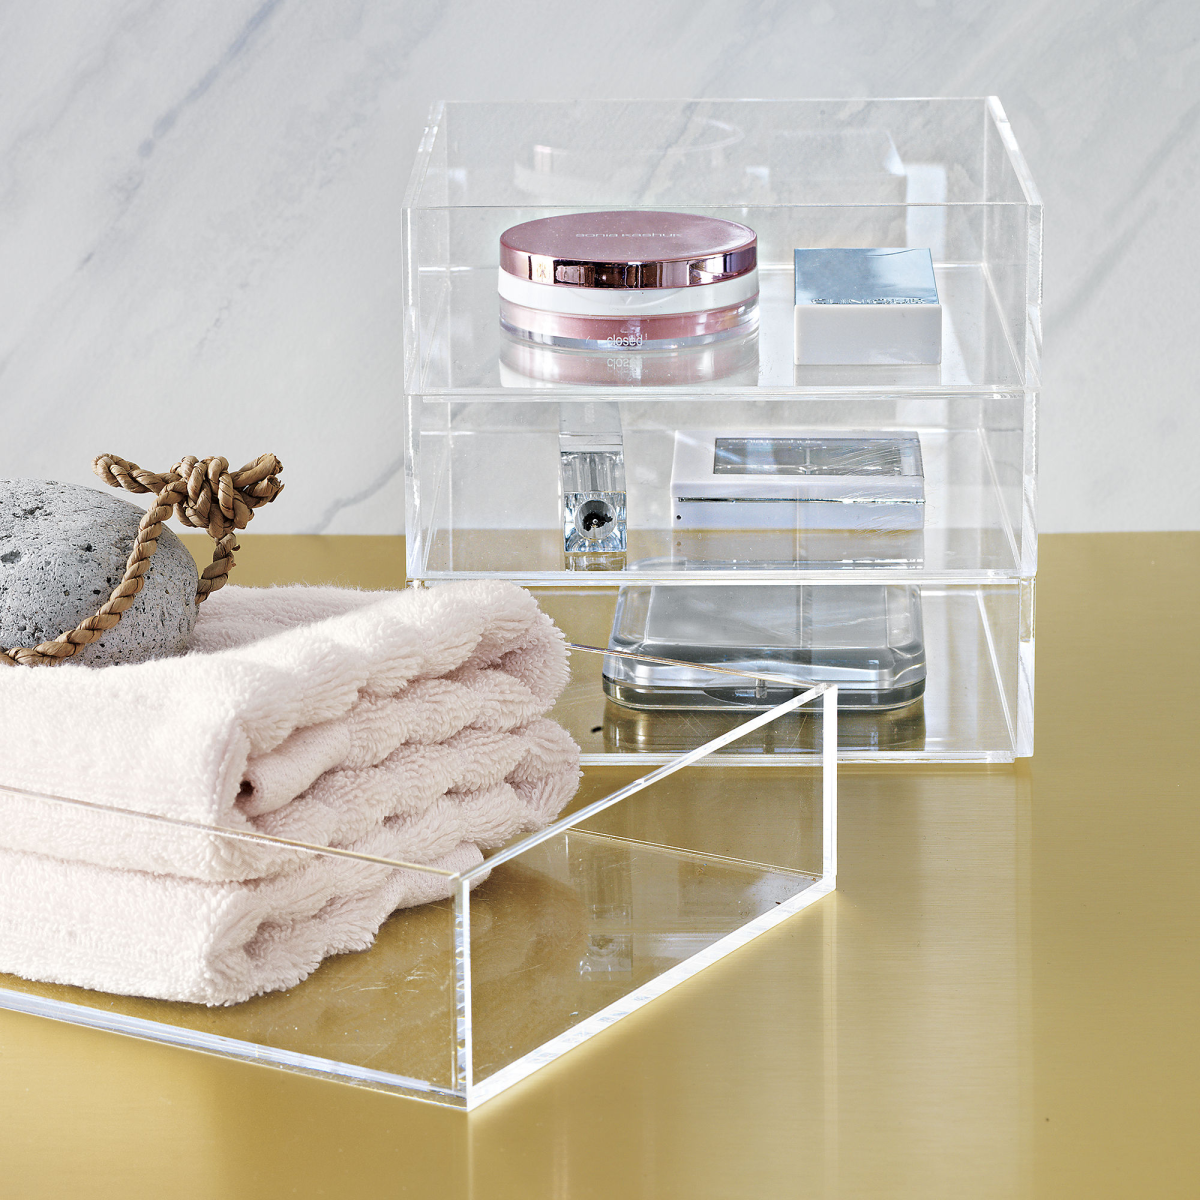 Acrylic bath accessories from CB2